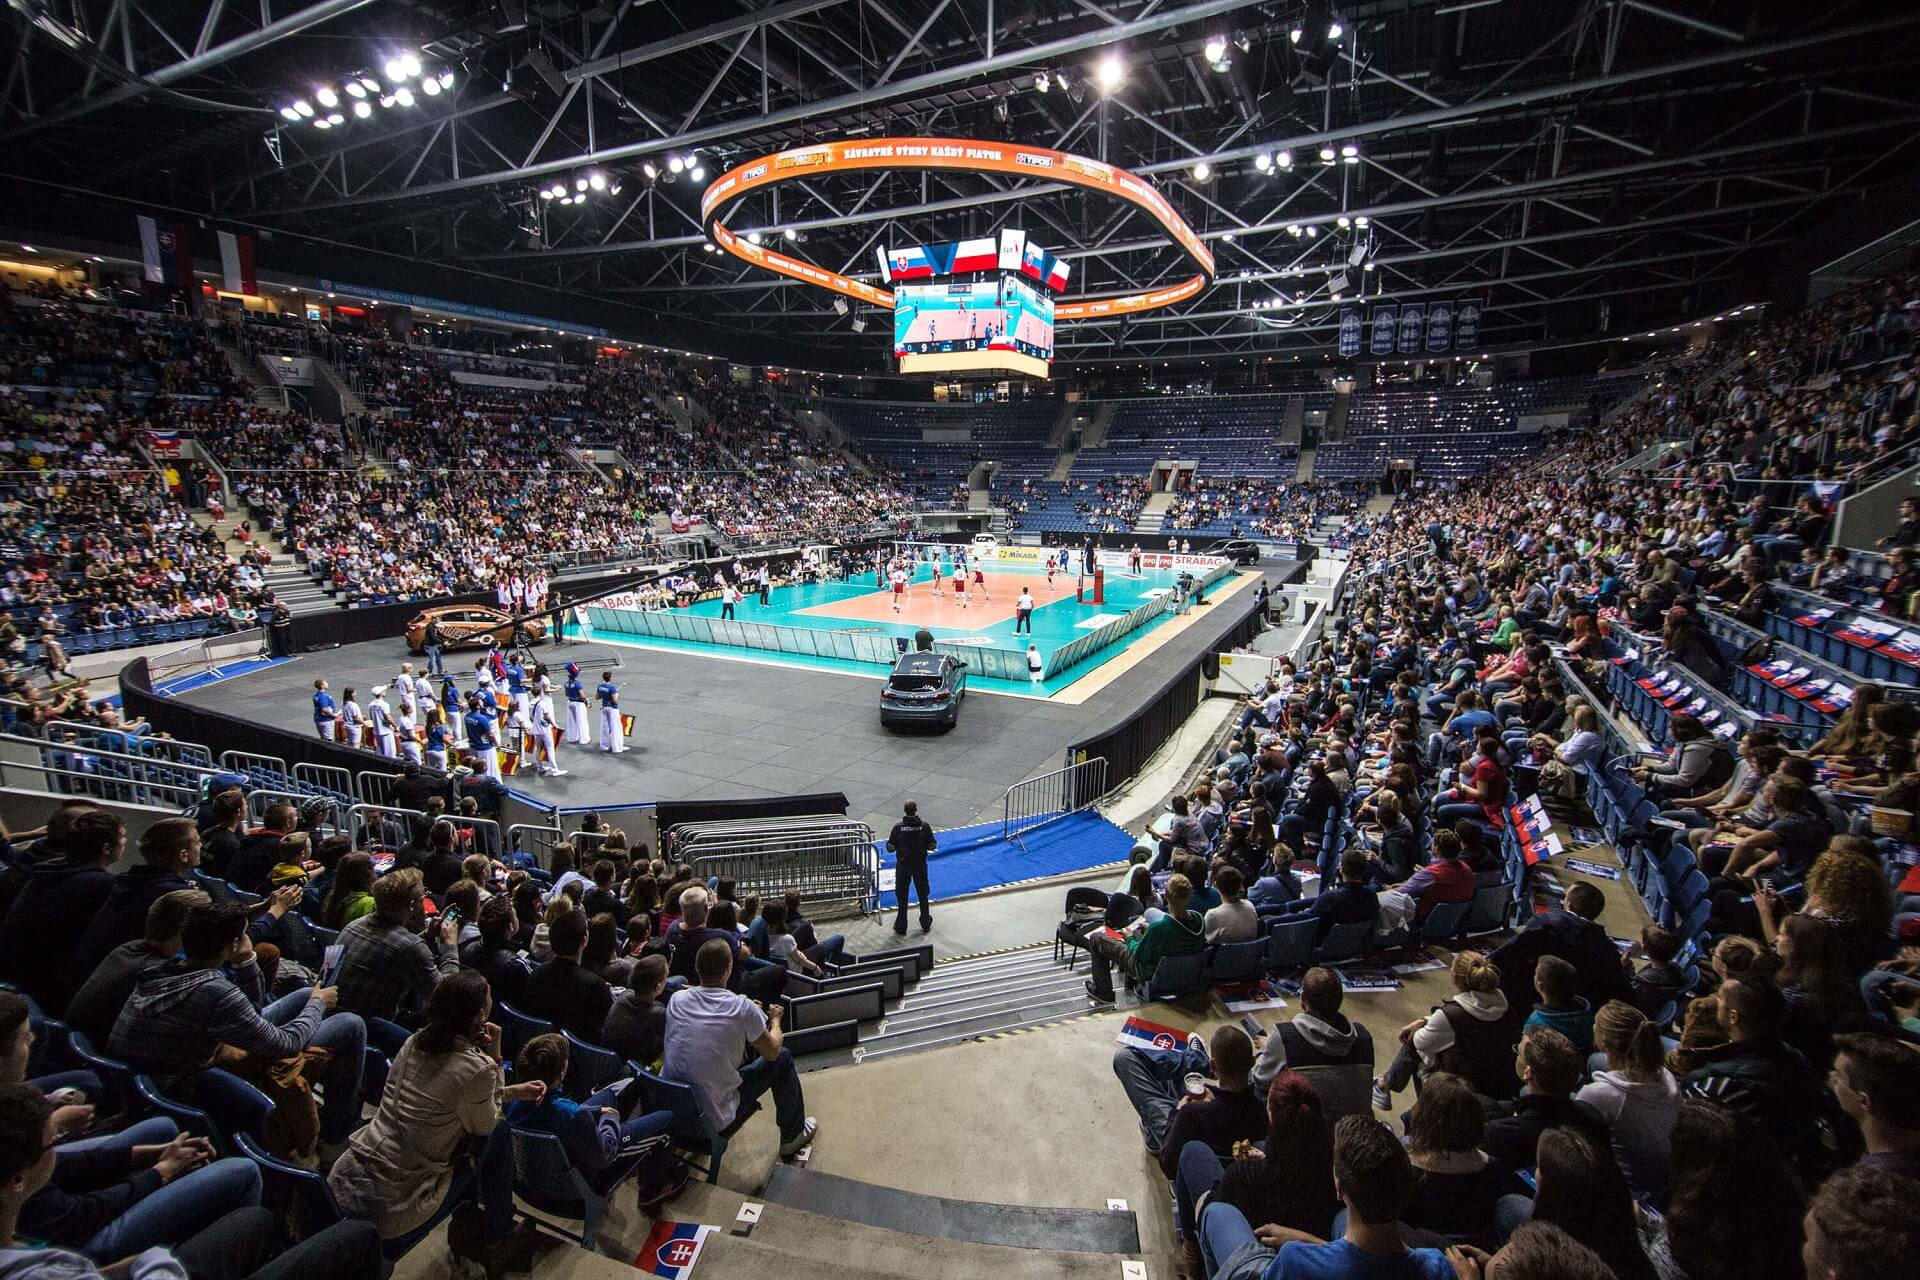 Slovakia step in for Czech Republic as 2019 women's EuroVolley co-hosts